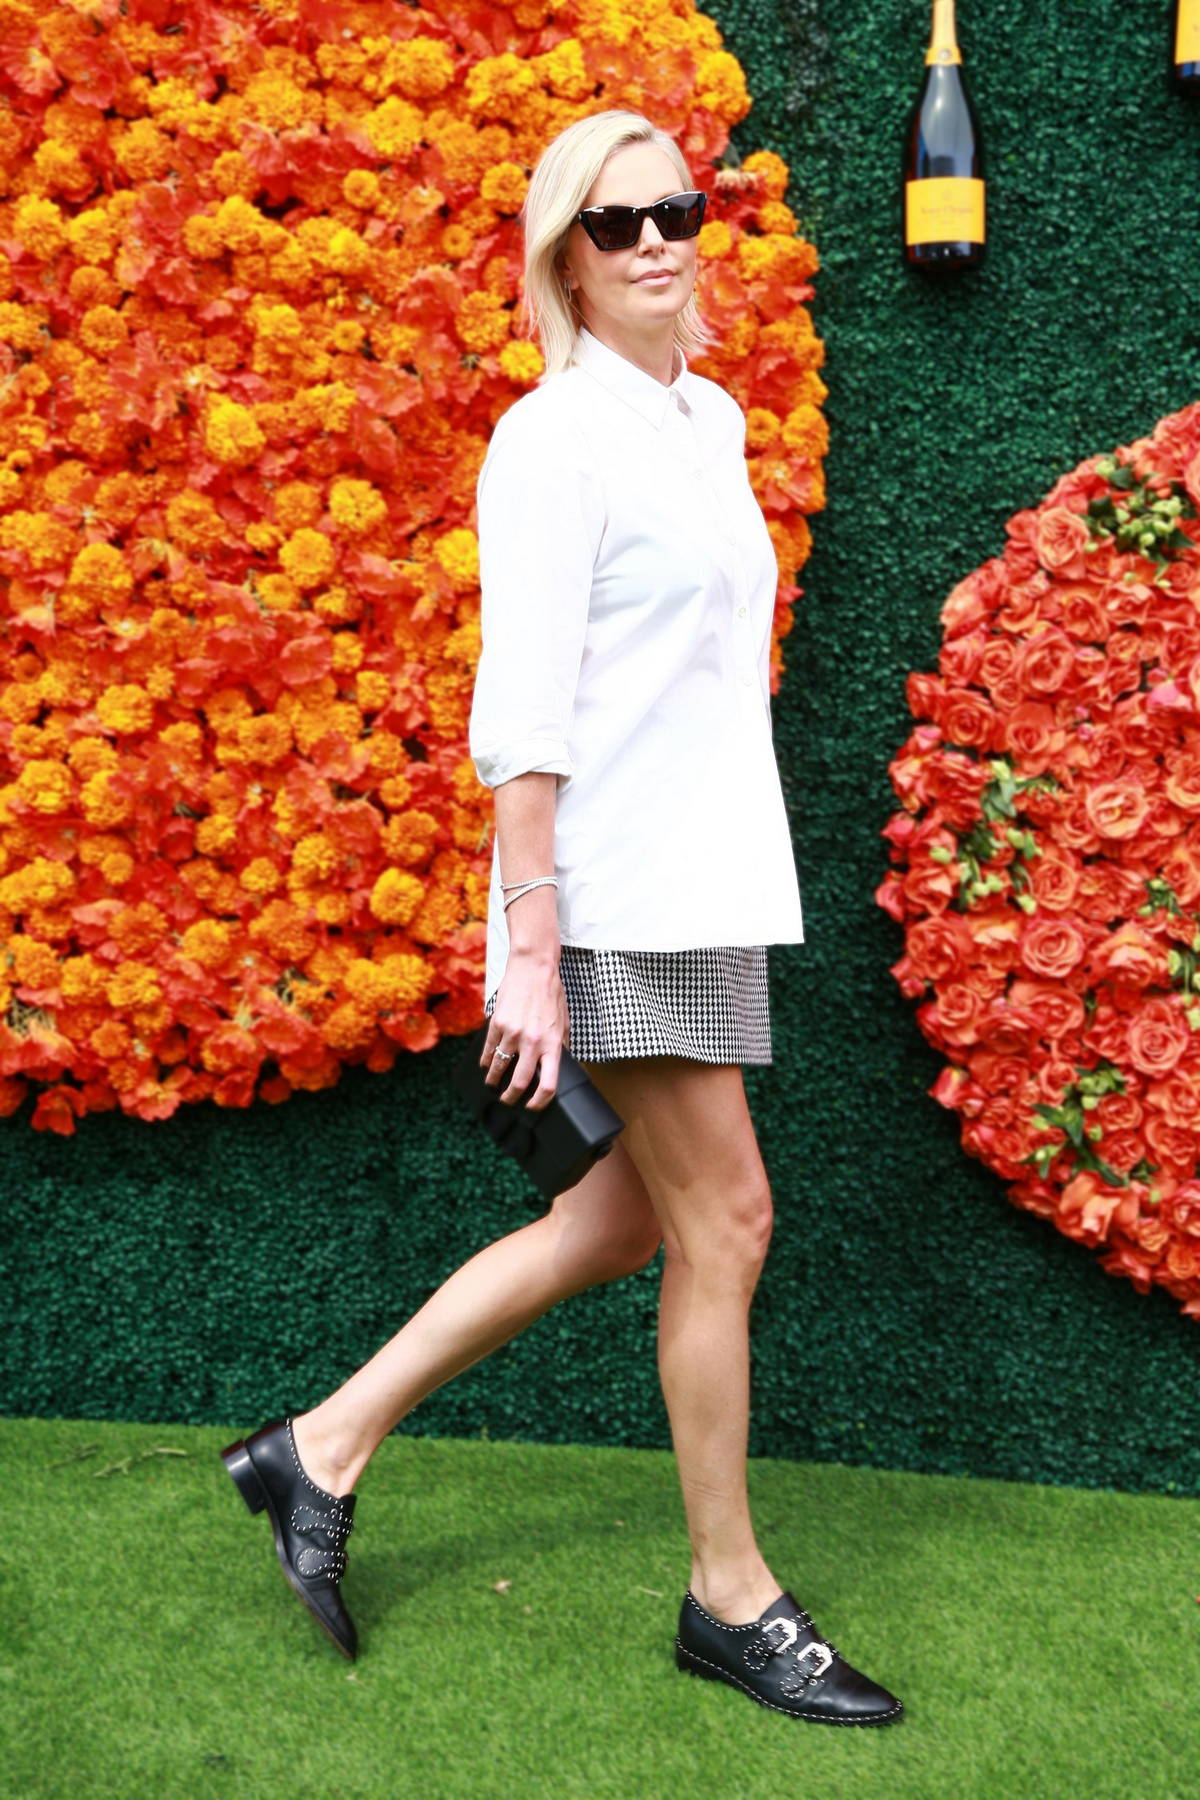 charlize theron attends the veuve clicquot polo classic at will rogers  state historic park in pacific palisades, california-021021_5